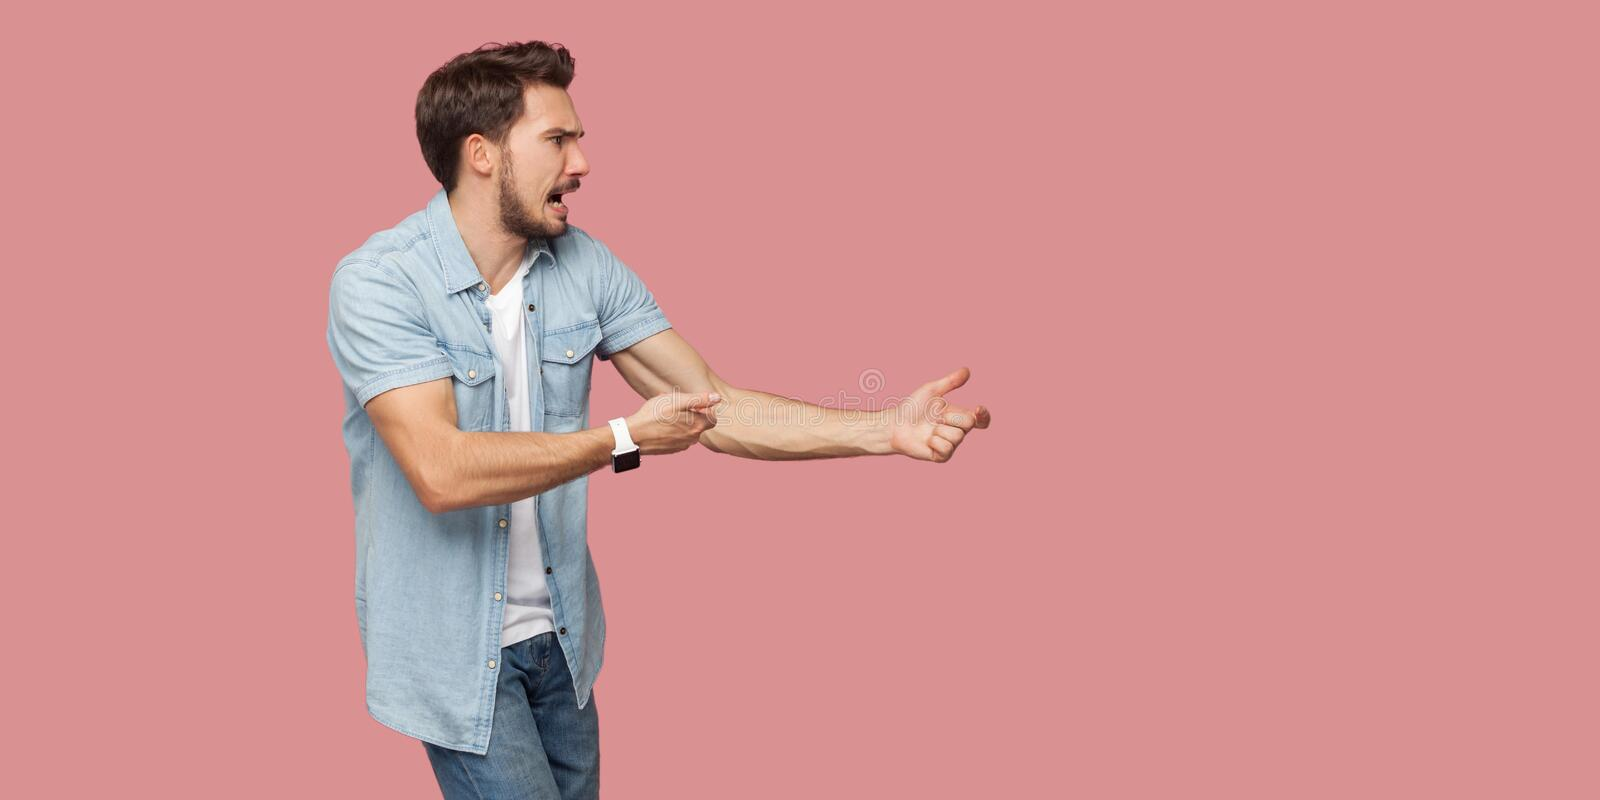 Profile side view portrait of serious screaming bearded young man in blue casual shirt standing in attack or pulling hands gesture stock image